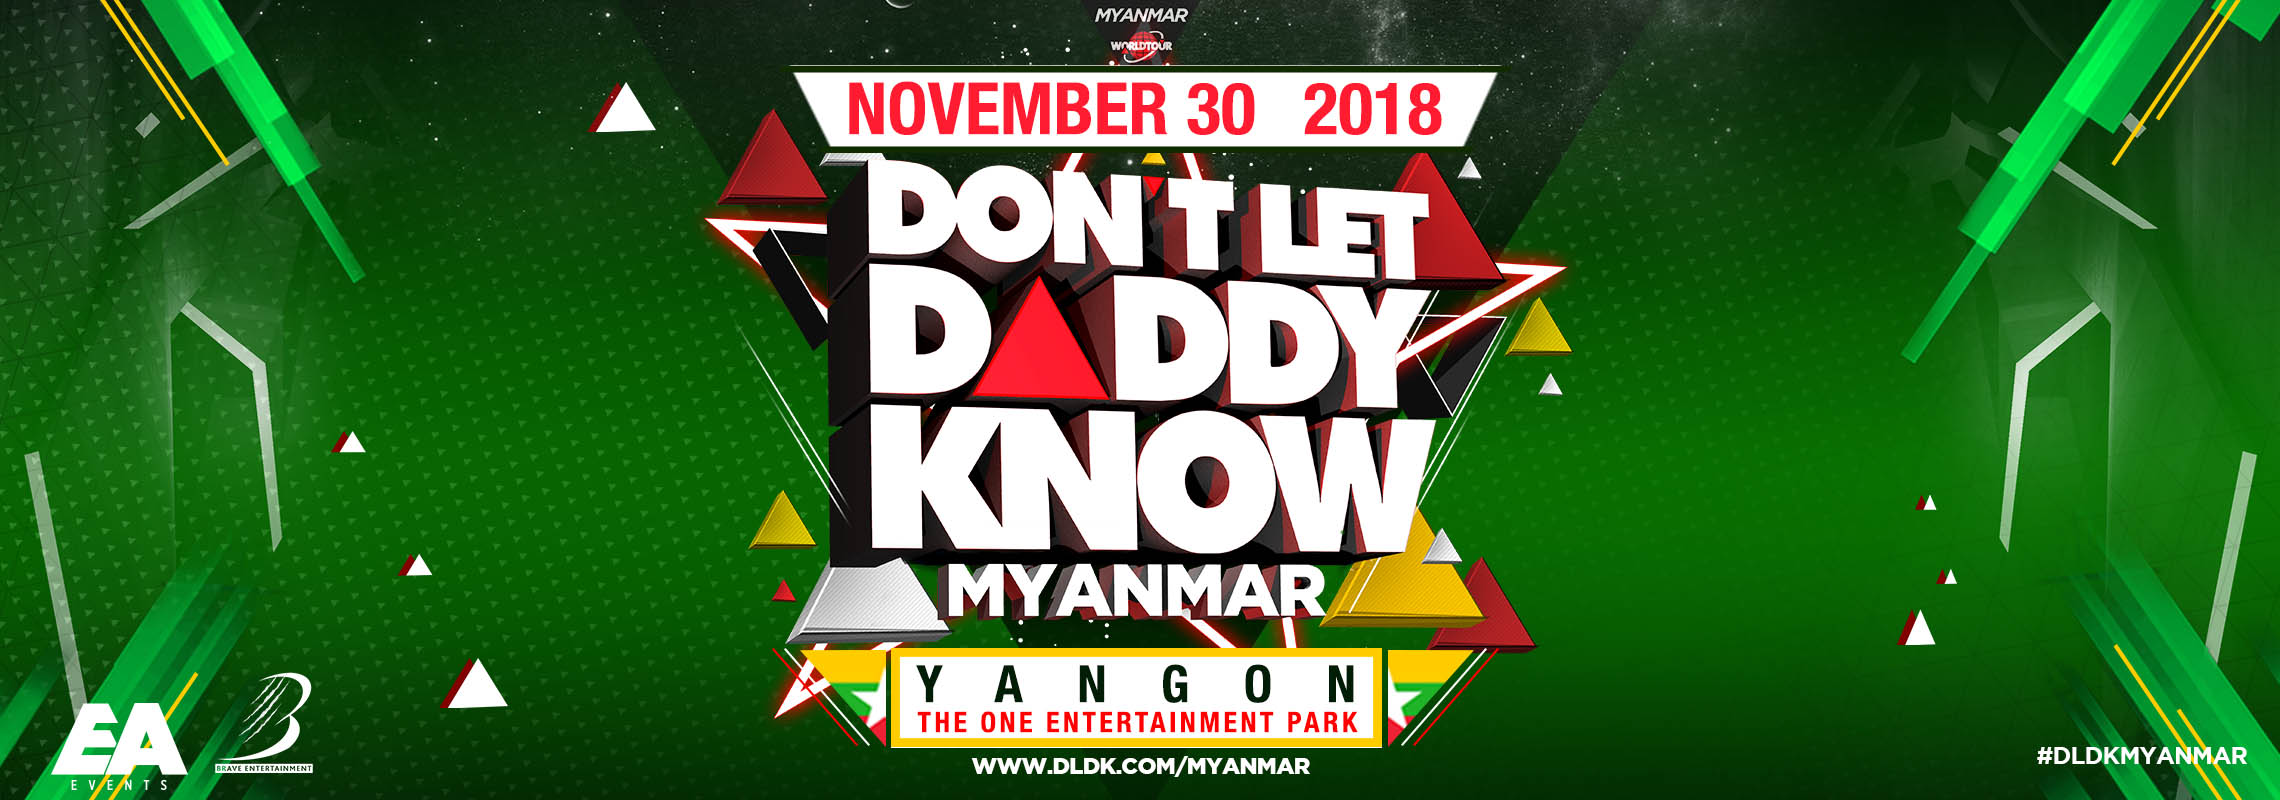 DLDK is coming to Myanmar - E&A Events